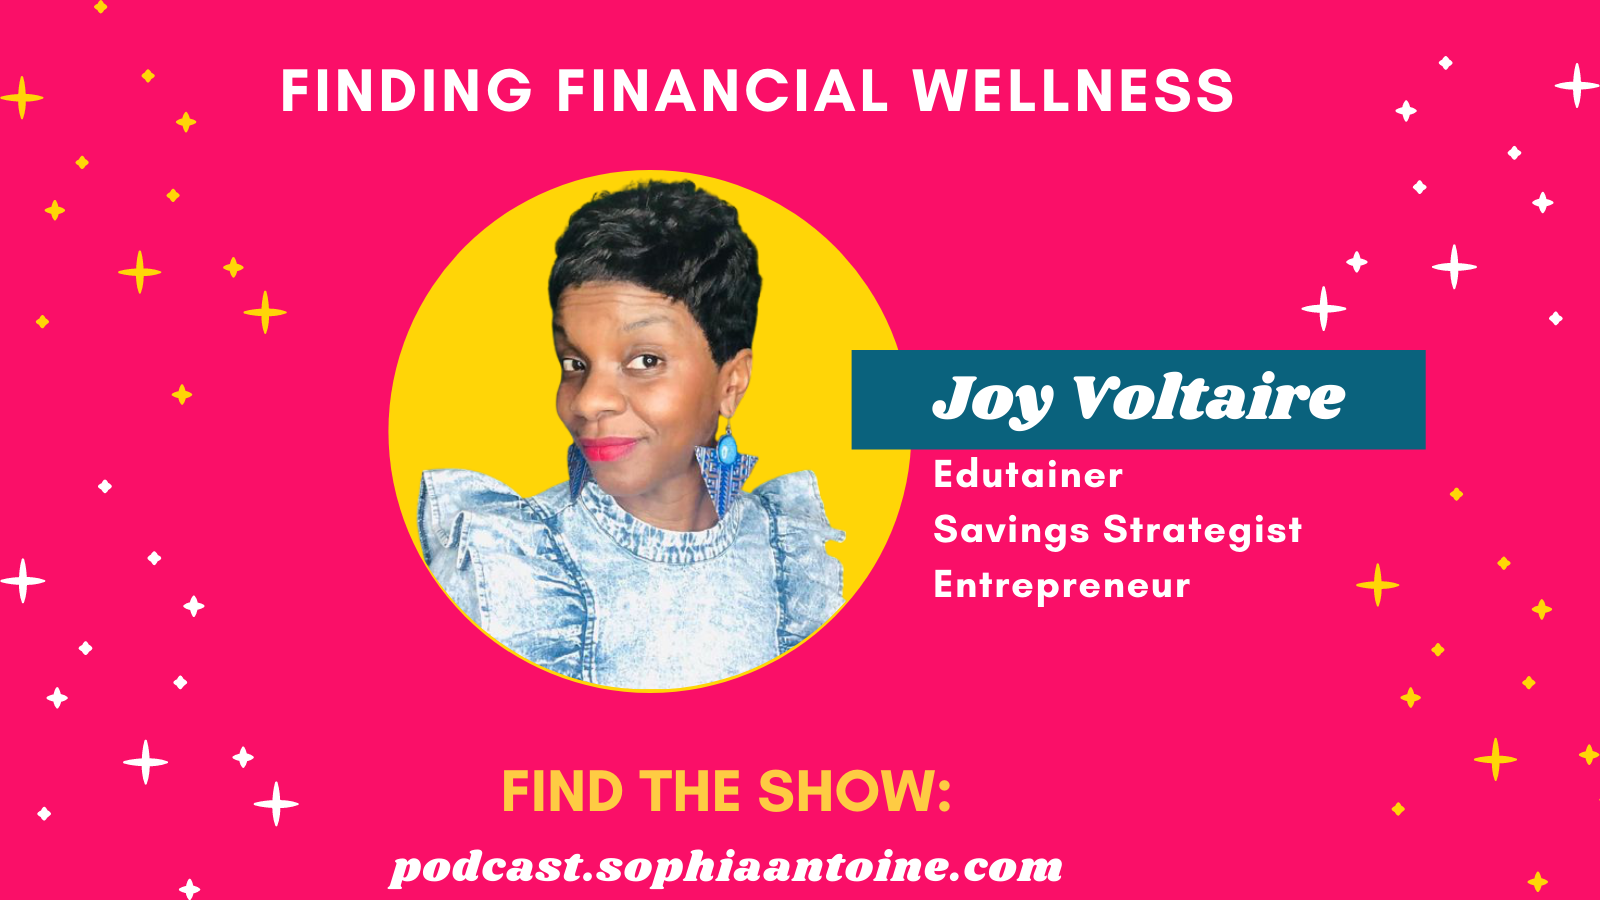 Finding Financial Wellness with Joy Voltaire